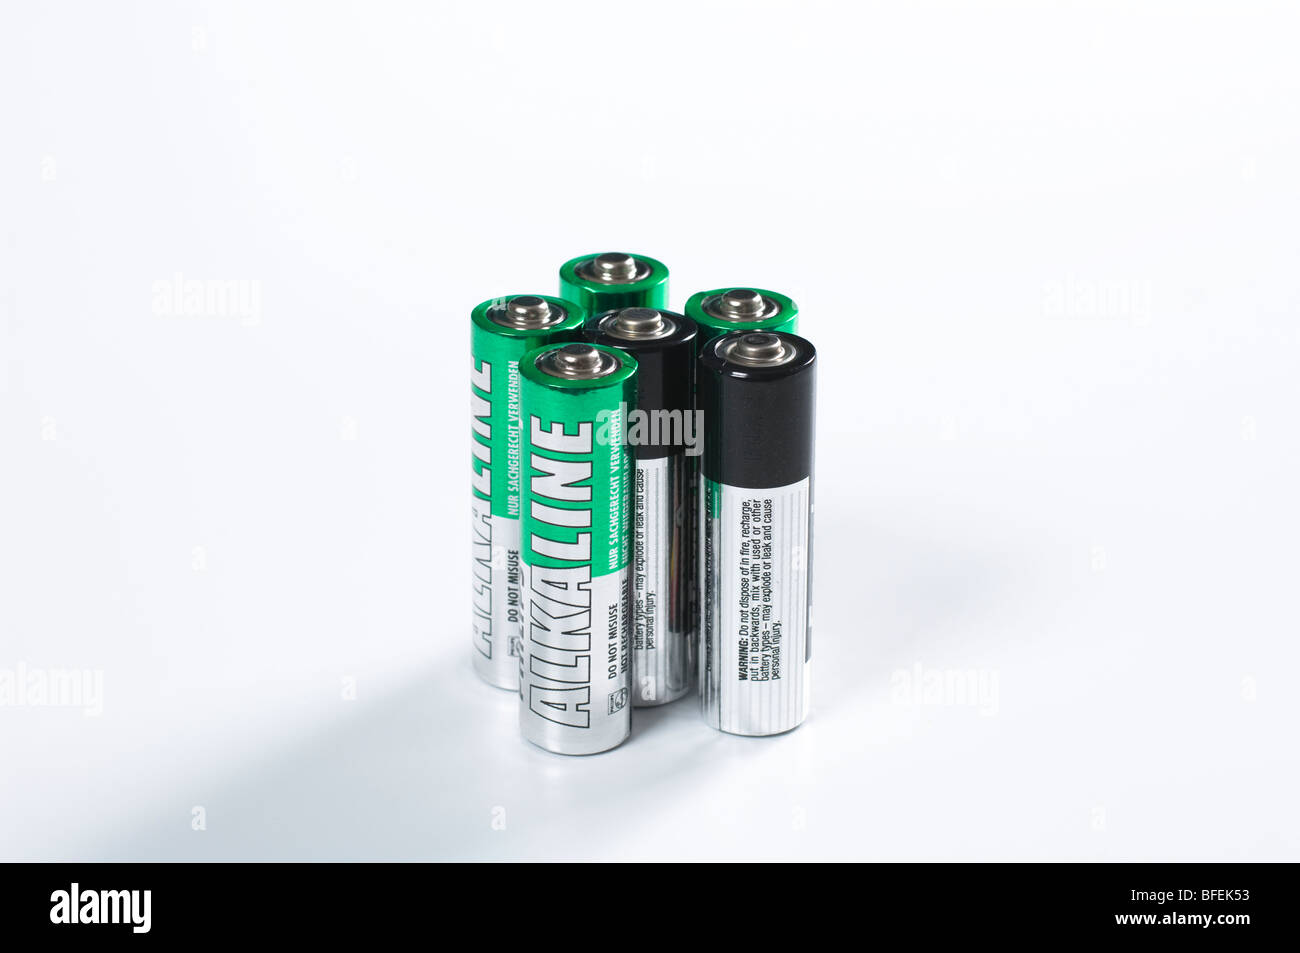 Aa Batterien Aa Batterien Stockfoto Bild 26752575 Alamy